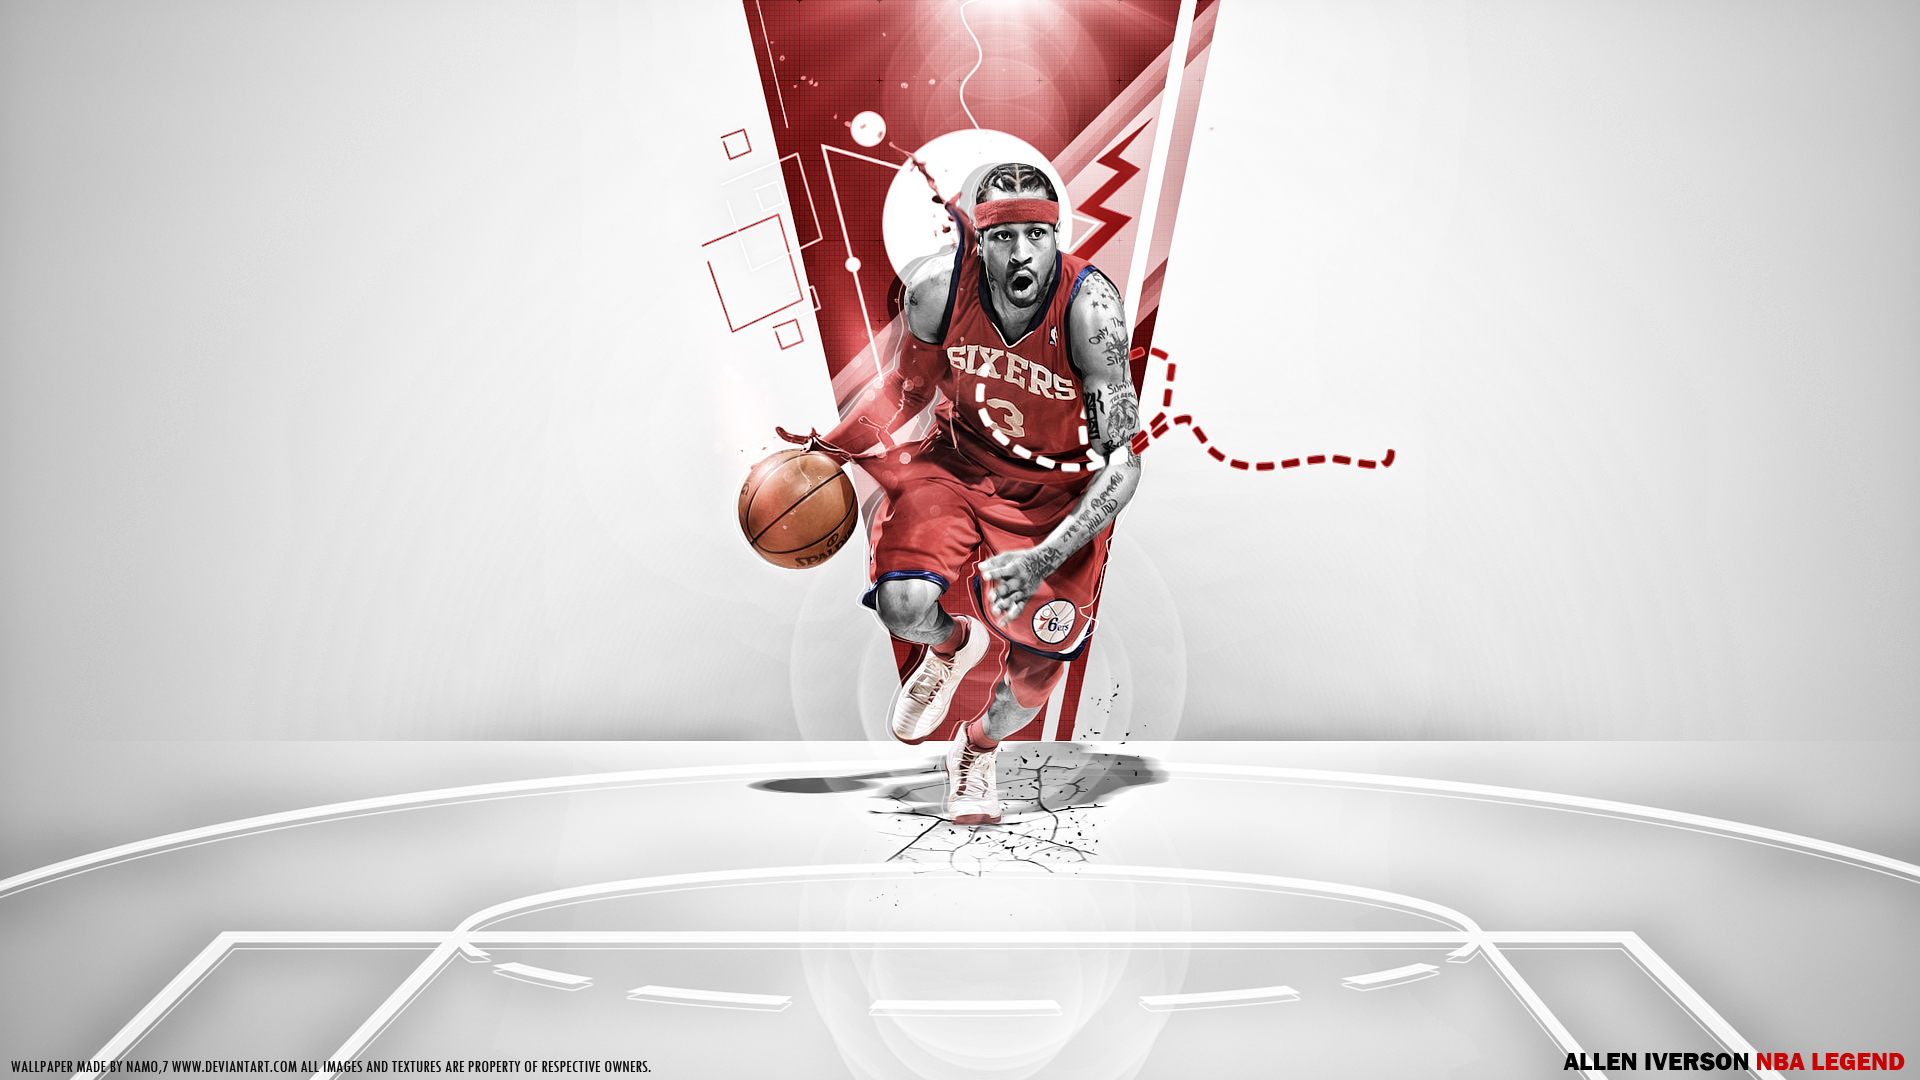 005 the nba legend Allen Iverson by namo,7 by 445578gfx on ...